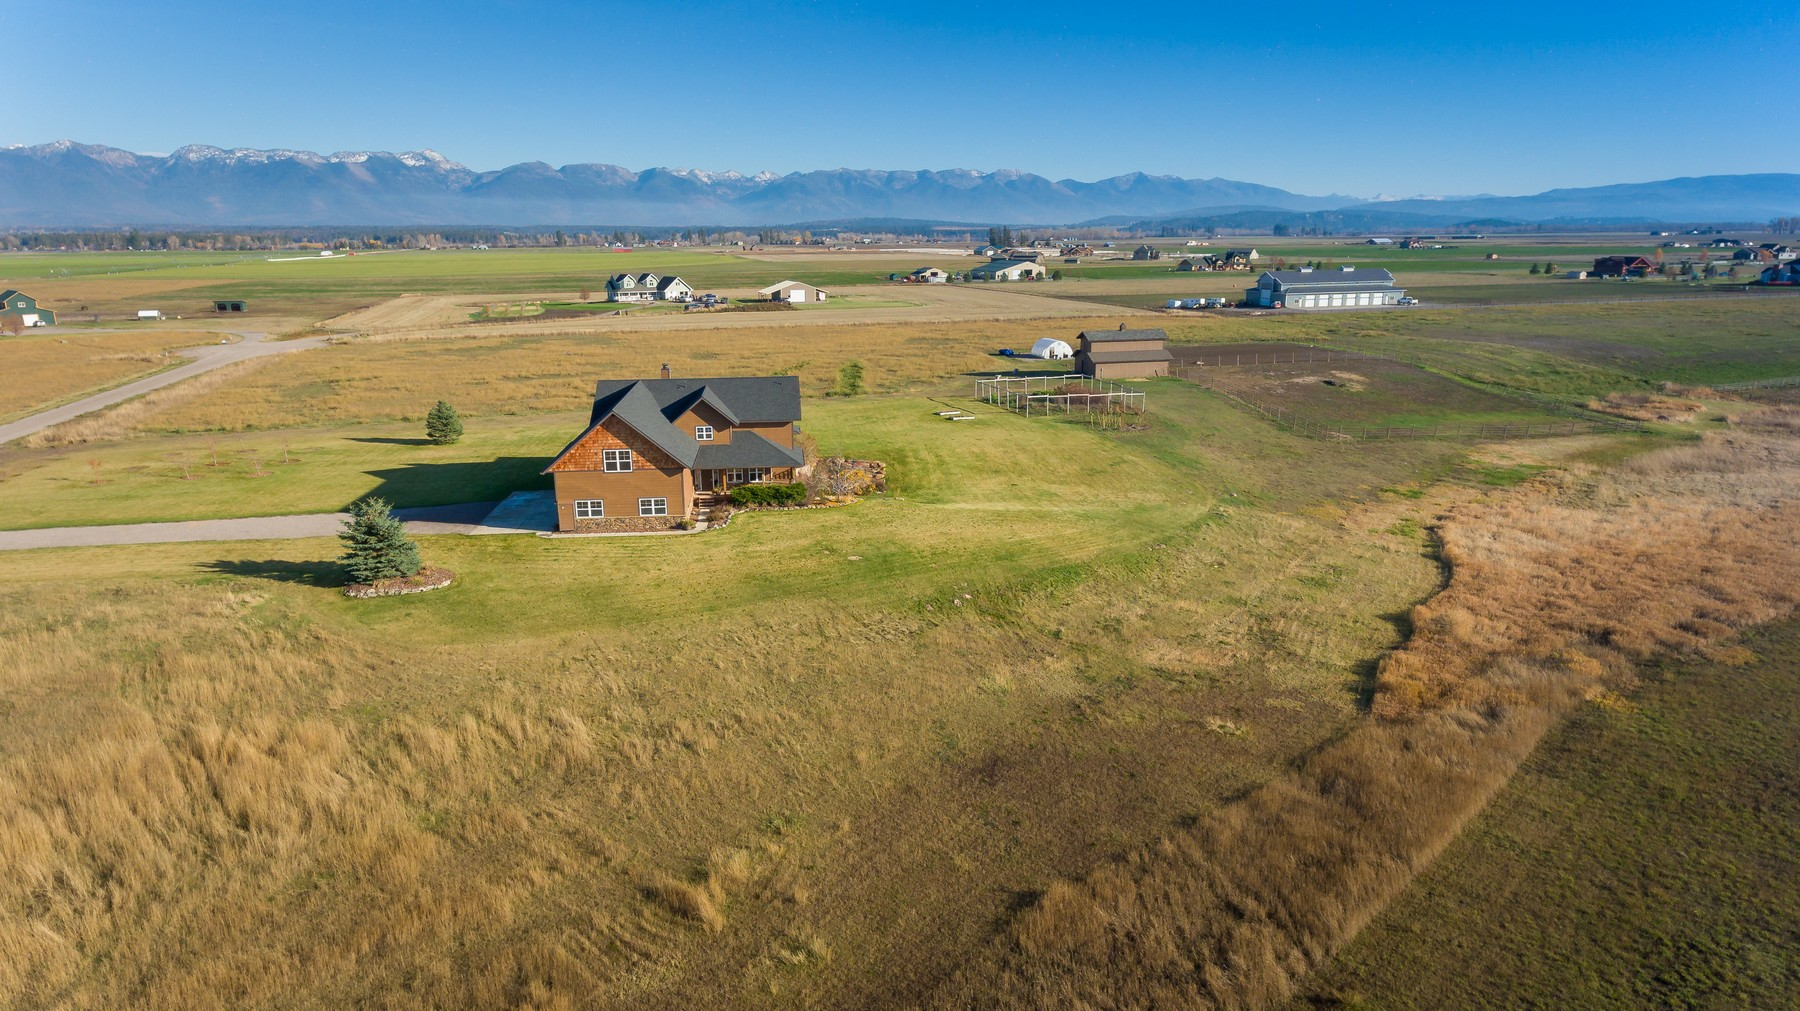 Single Family Home for Sale at 122 Equestrian Lane , Kalispell, MT 59901 122 Equestrian Ln Kalispell, Montana 59901 United States